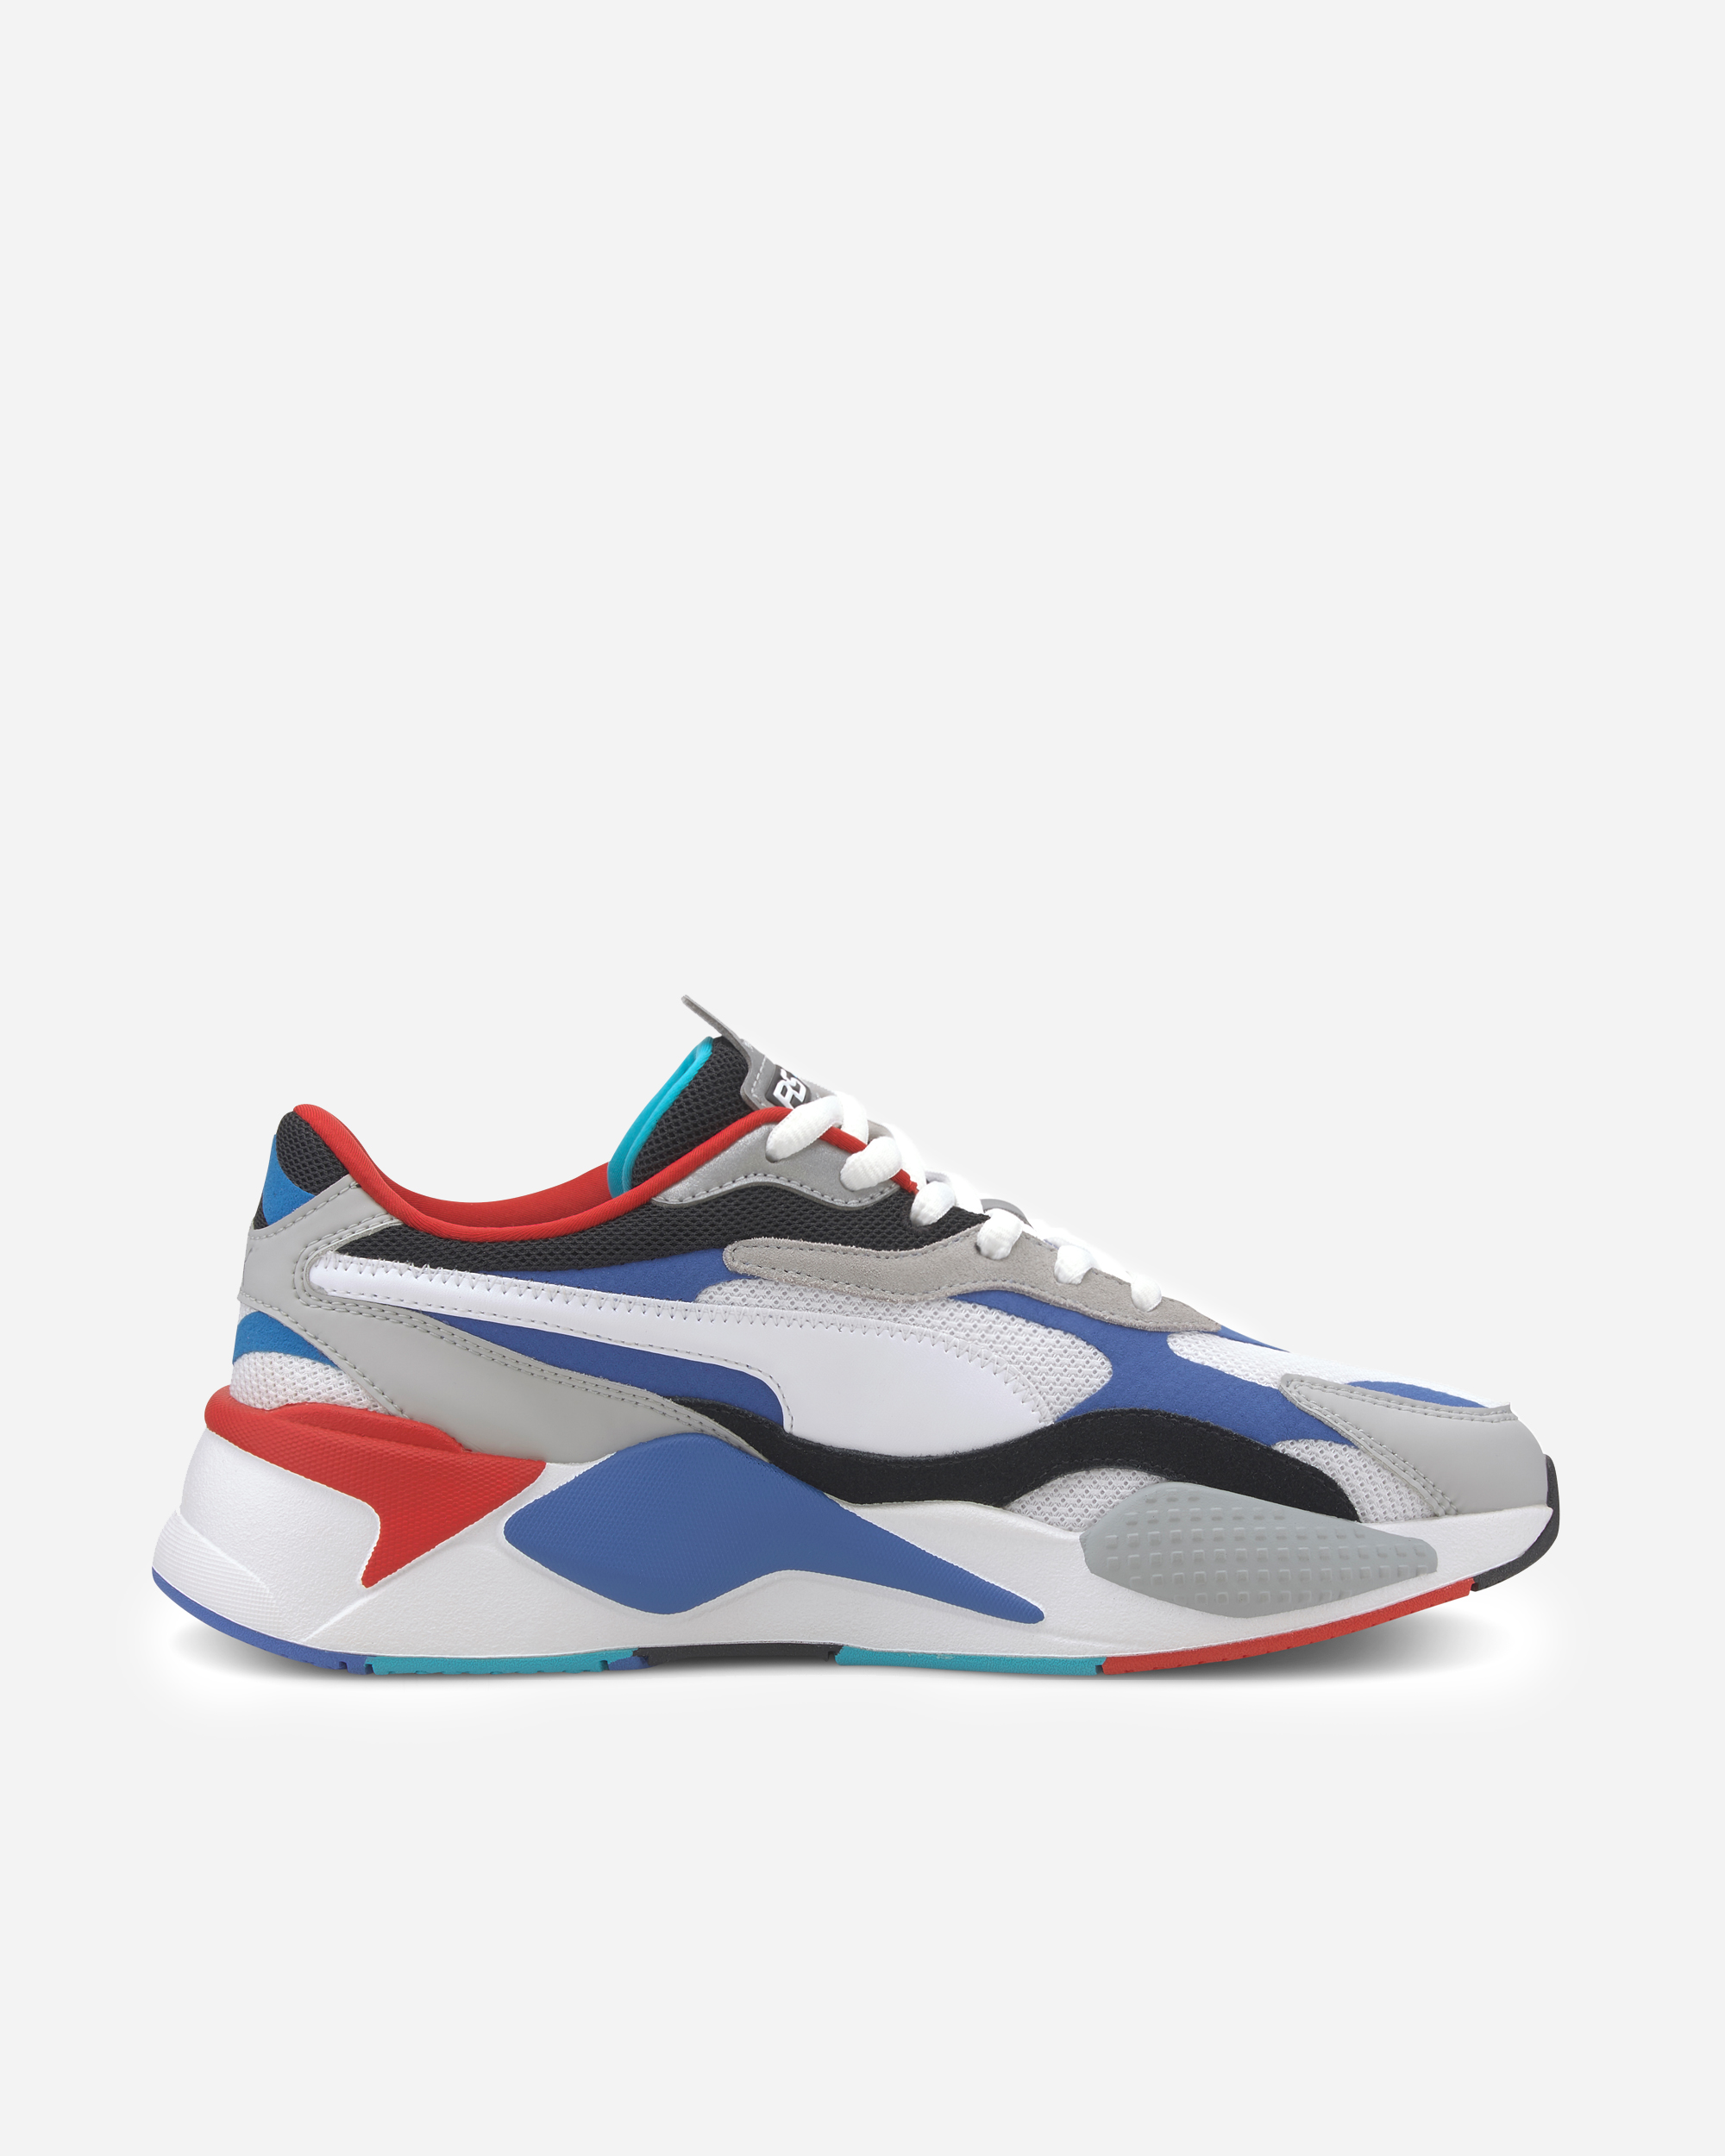 Puma RS-X3 Puzzle White/Blue | 371570 005 – Naked